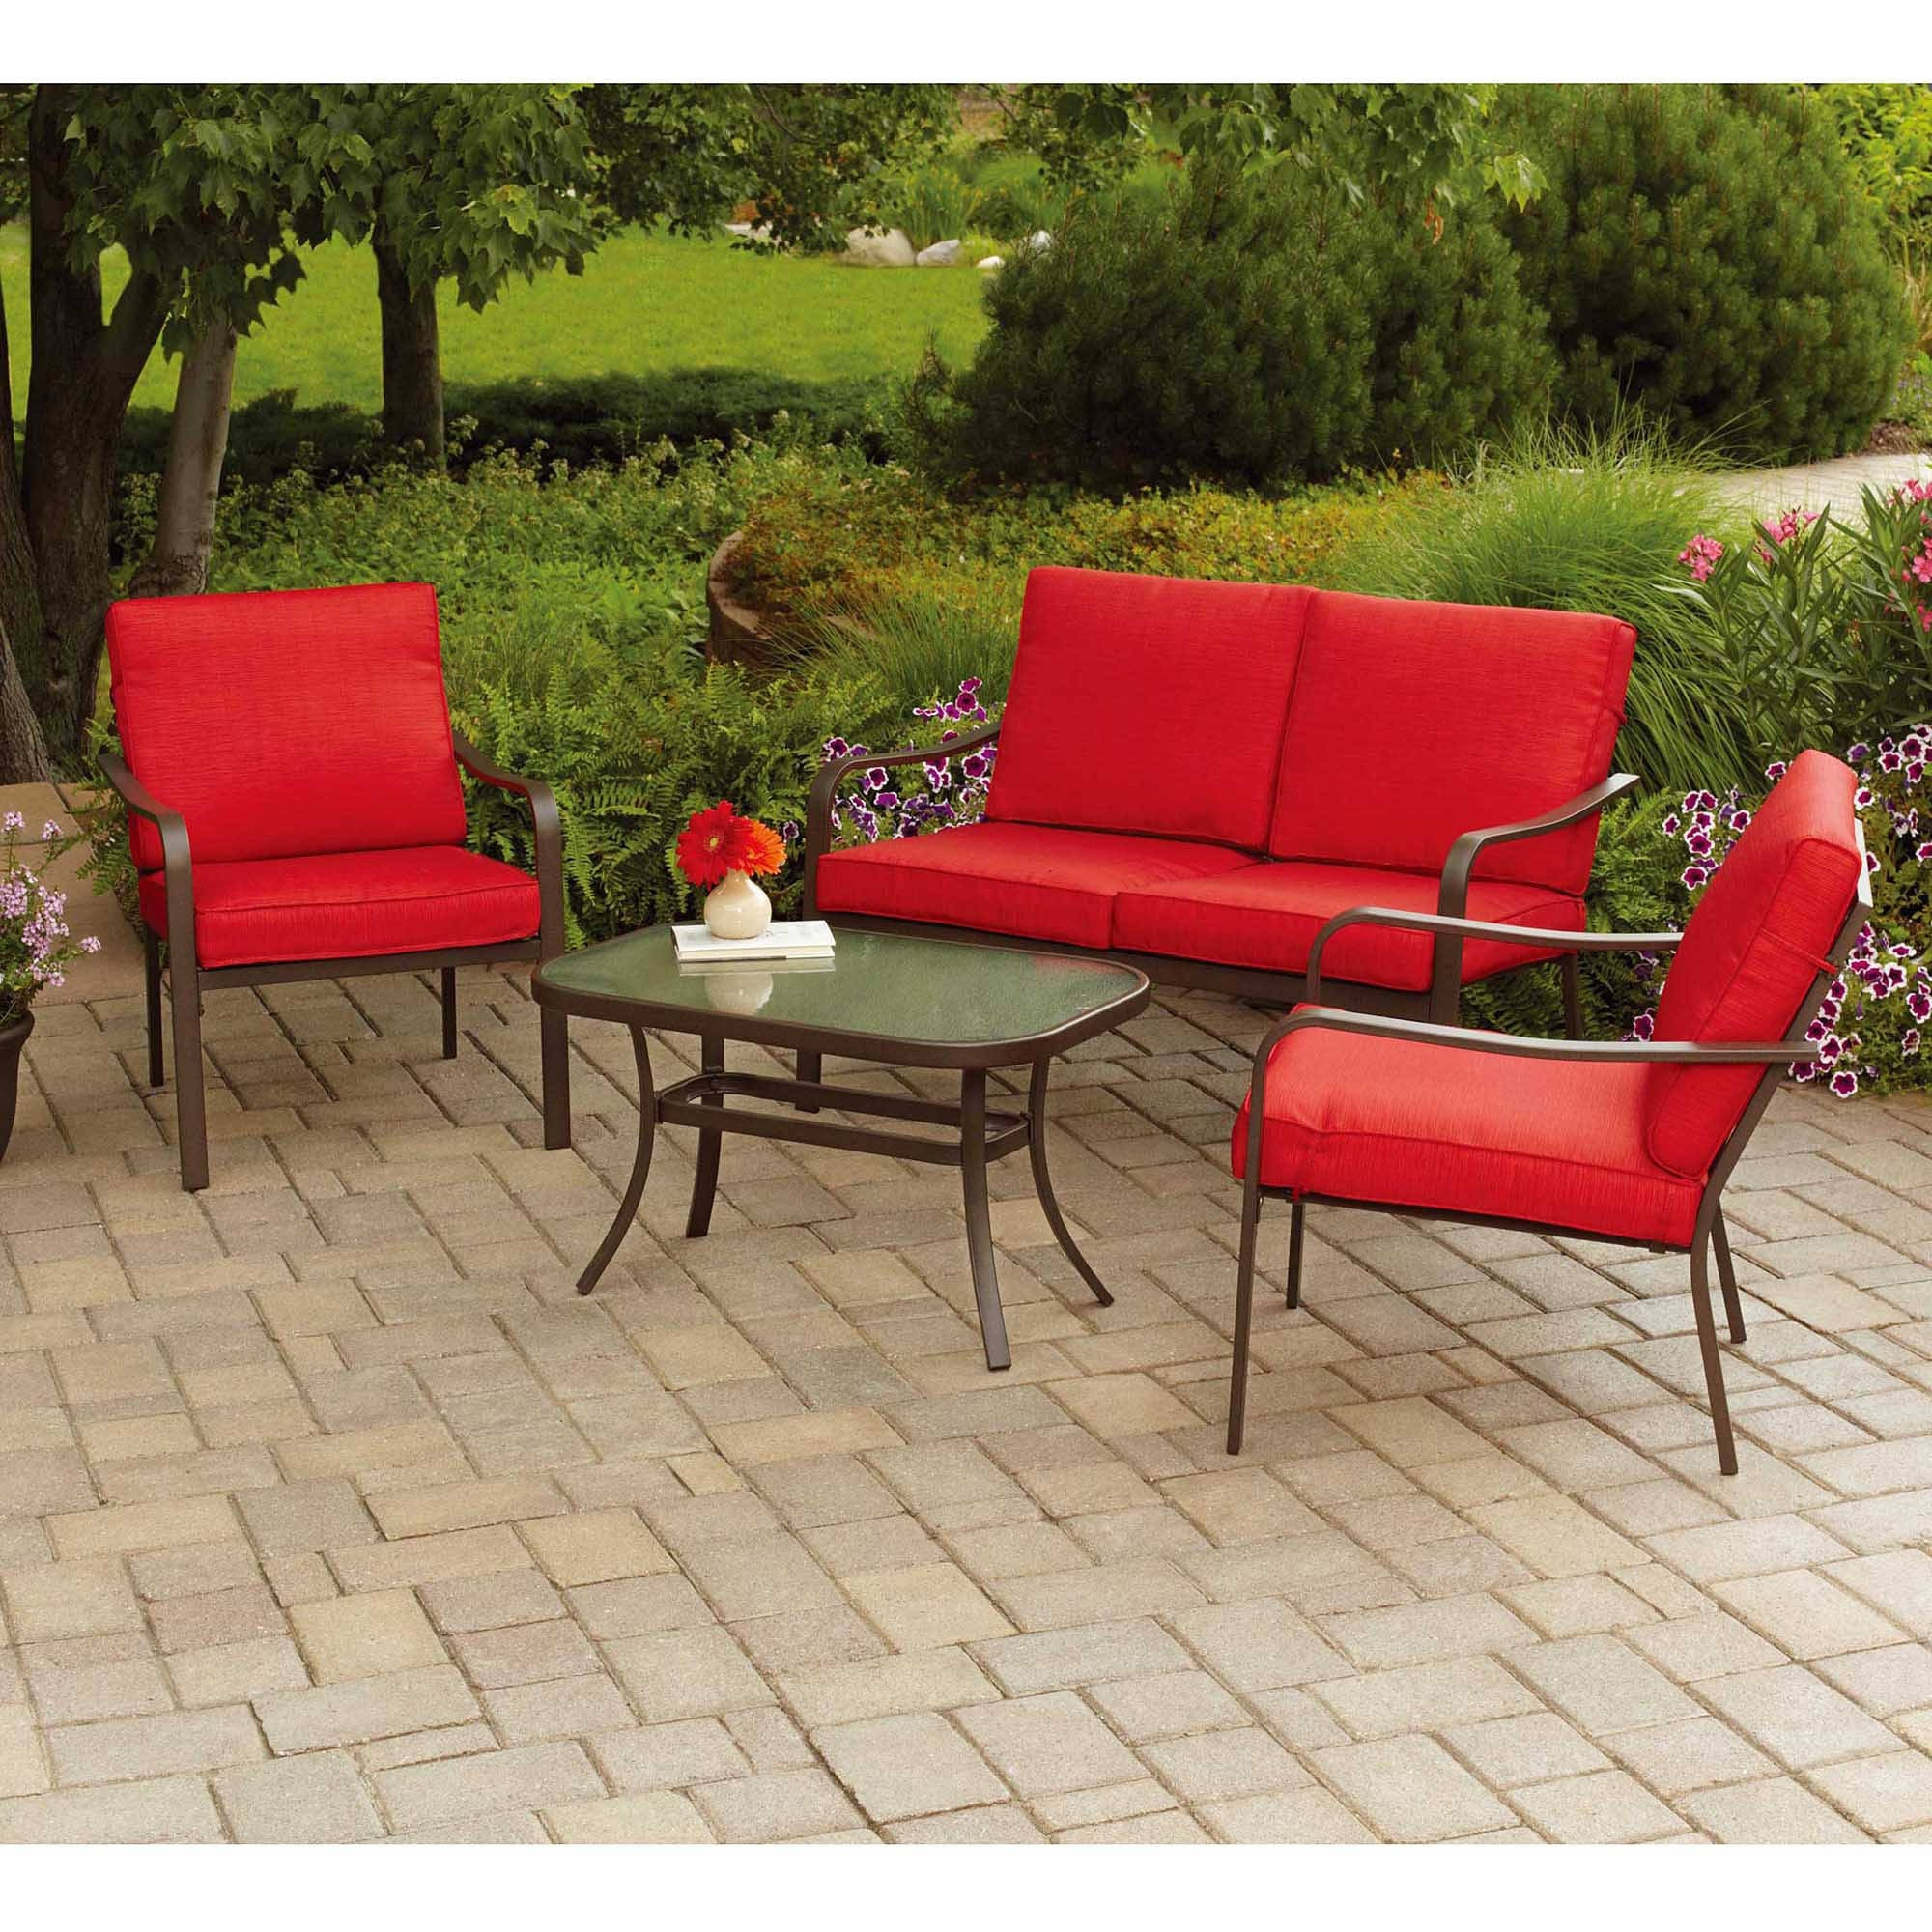 Mainstays Stanton Cushioned 4 Piece Patio Conversation Set, Seats 4 Within Fashionable Sears Patio Furniture Conversation Sets (View 3 of 20)